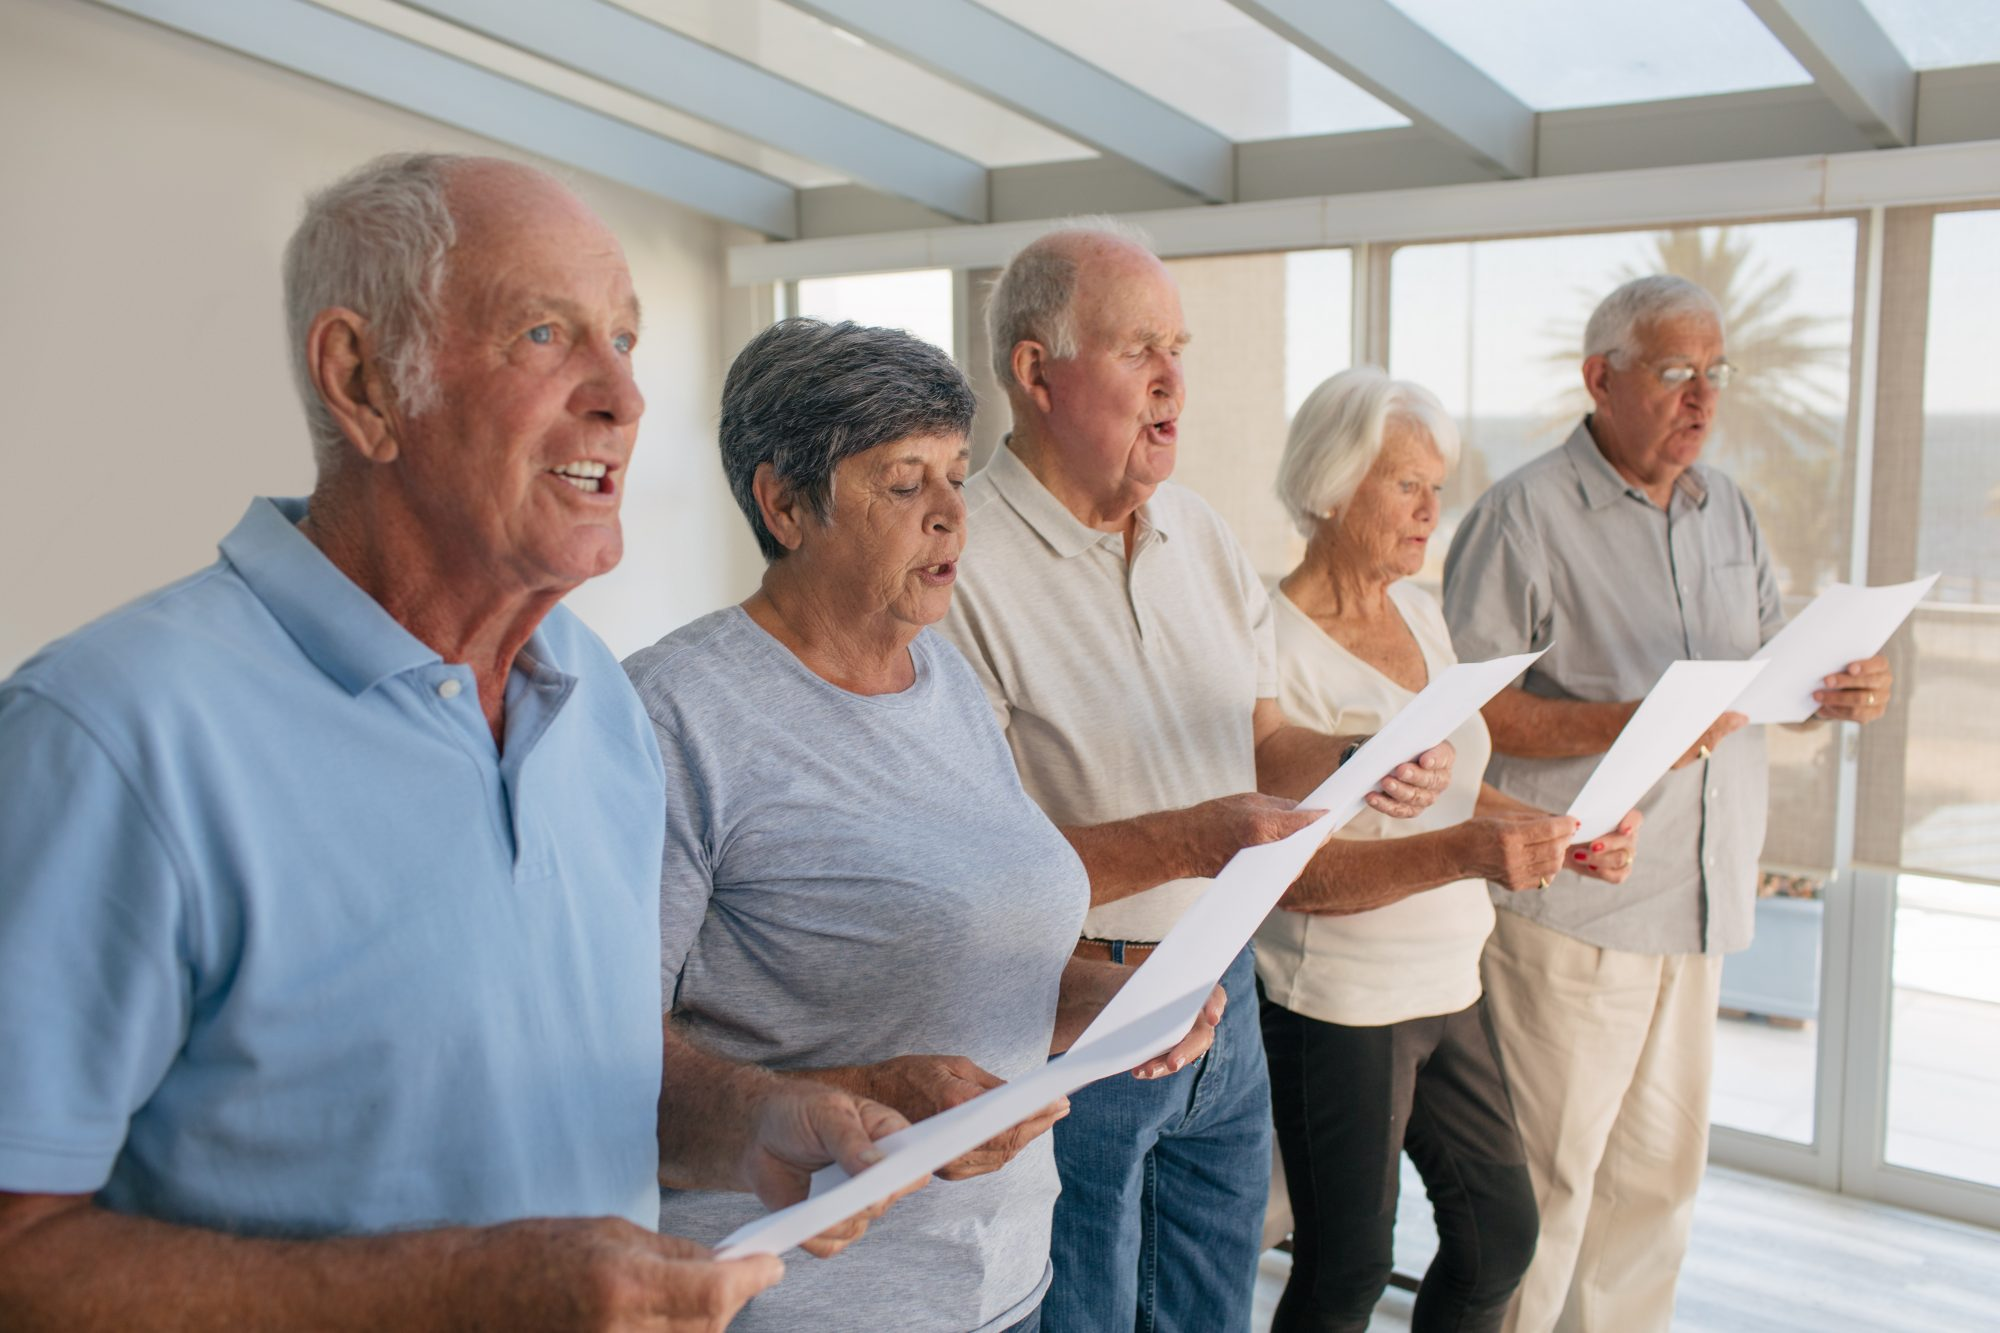 Study Finds Joining a Choir Improves Life for Lonely Older Adults